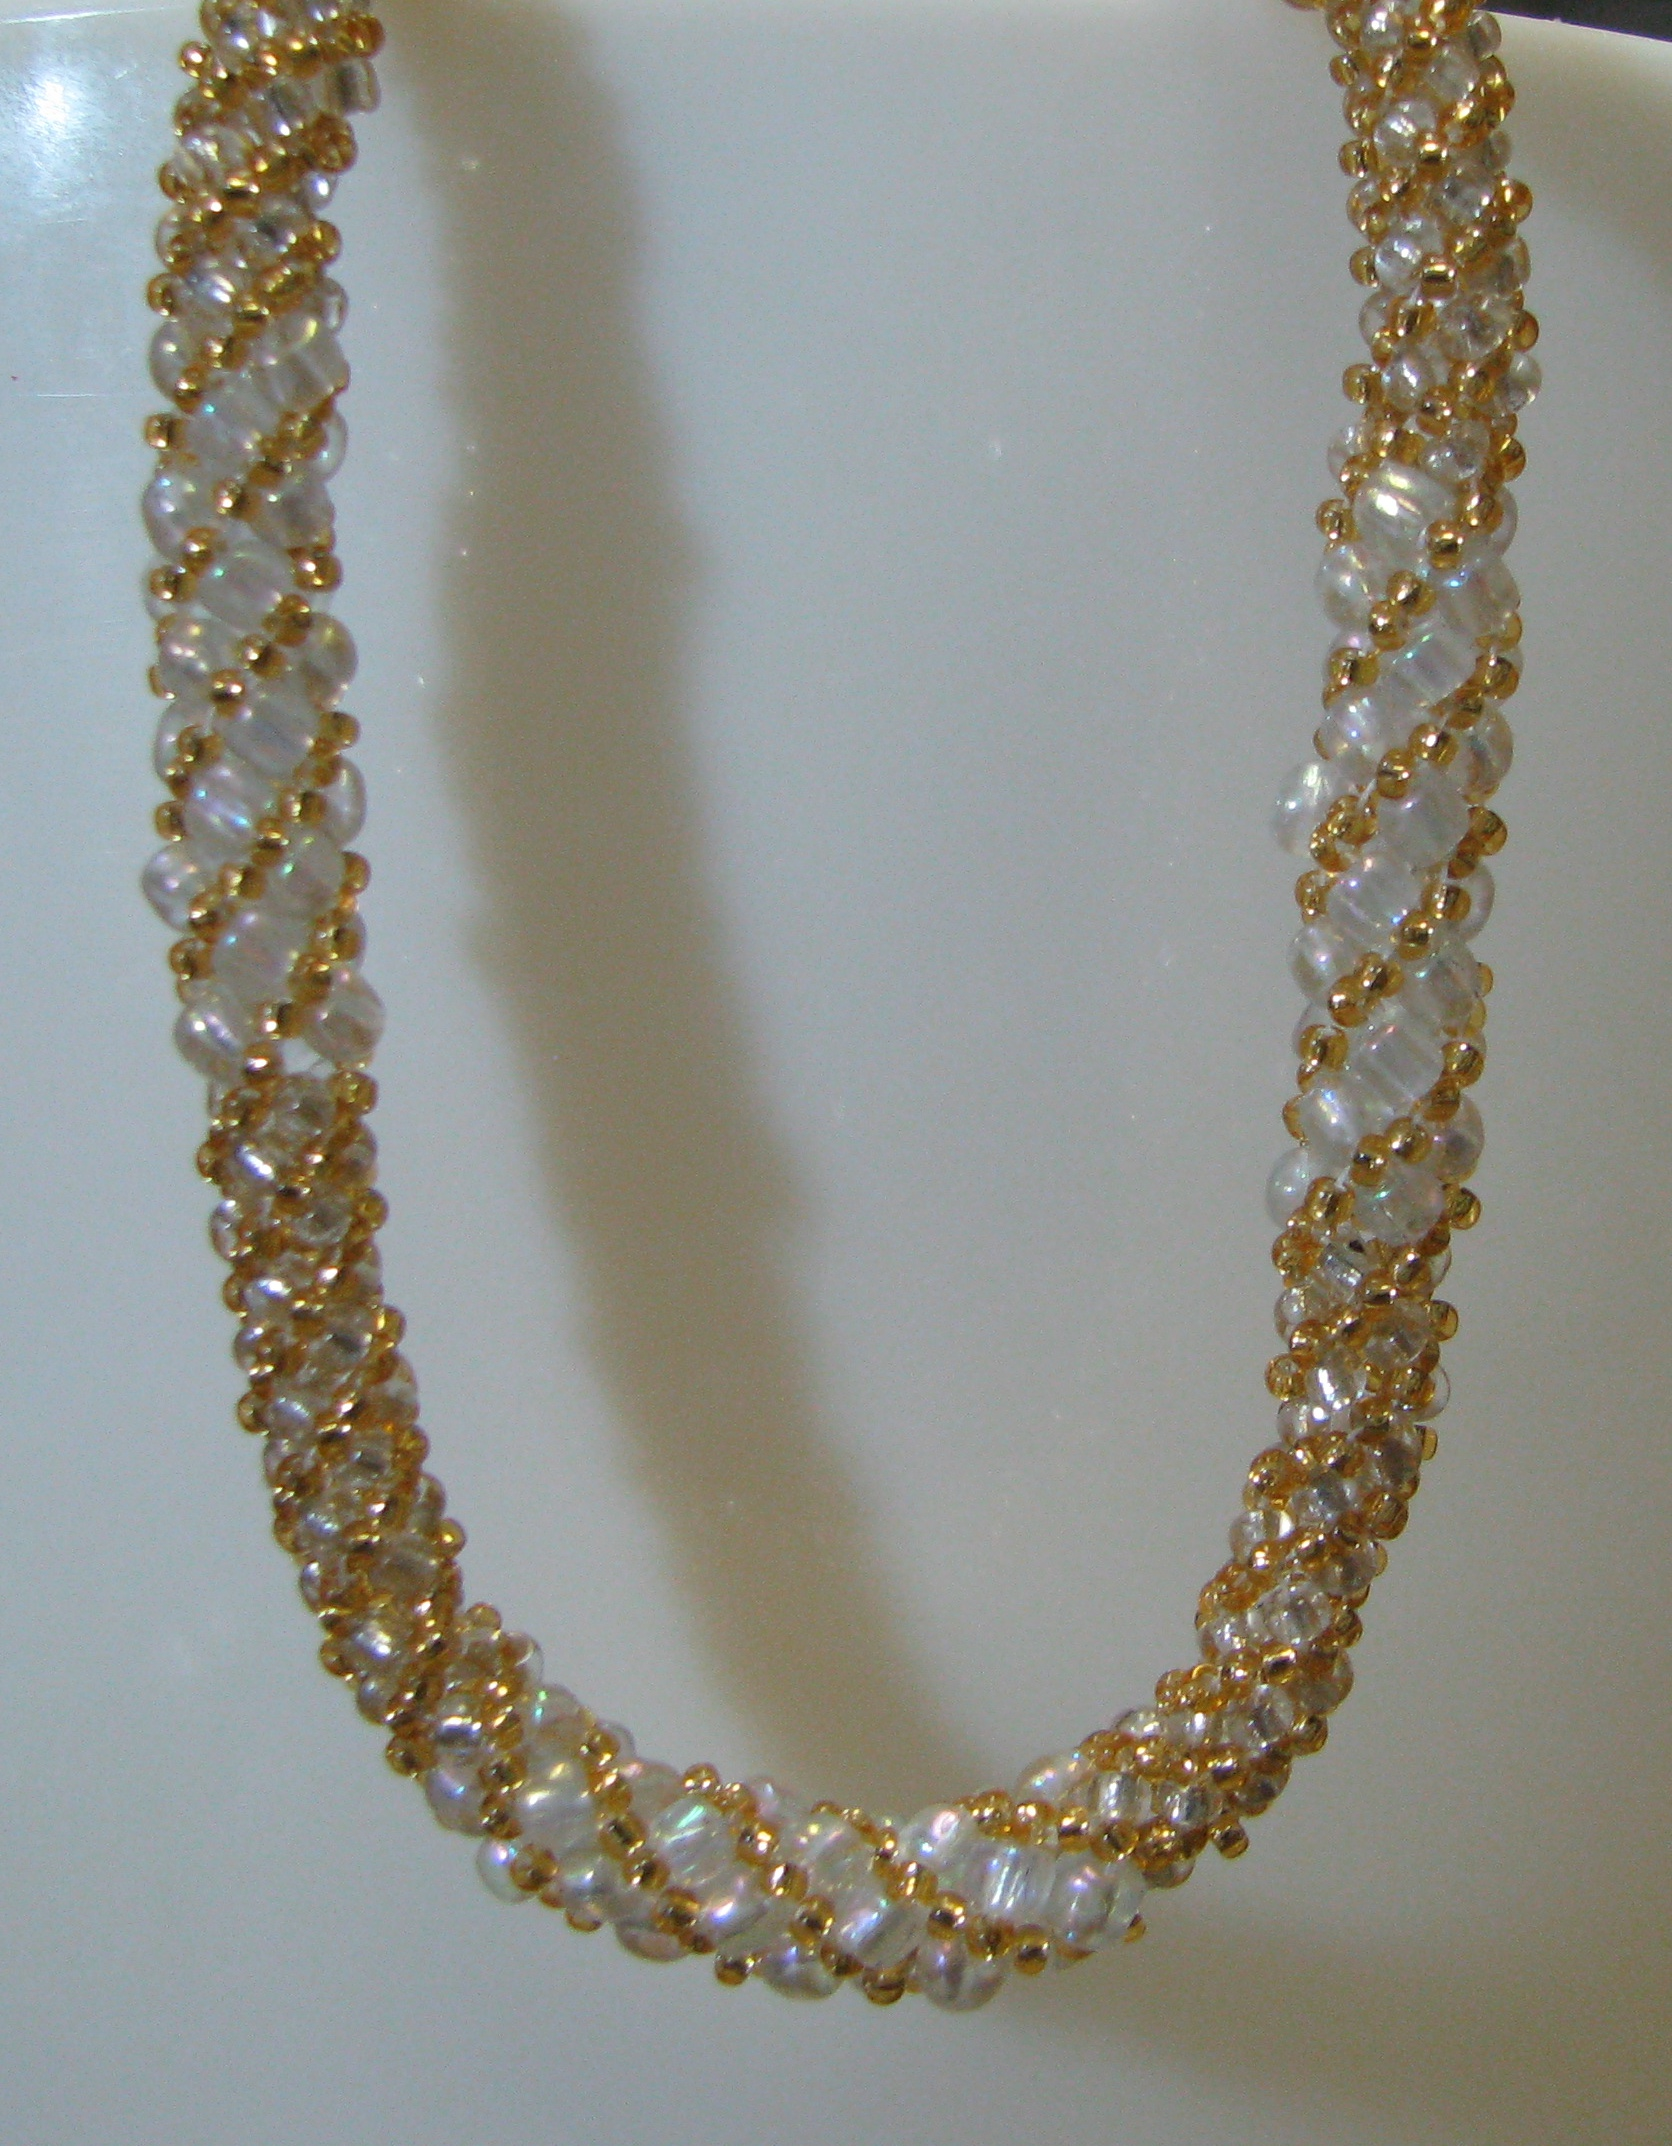 4_necklace_17_img_6484